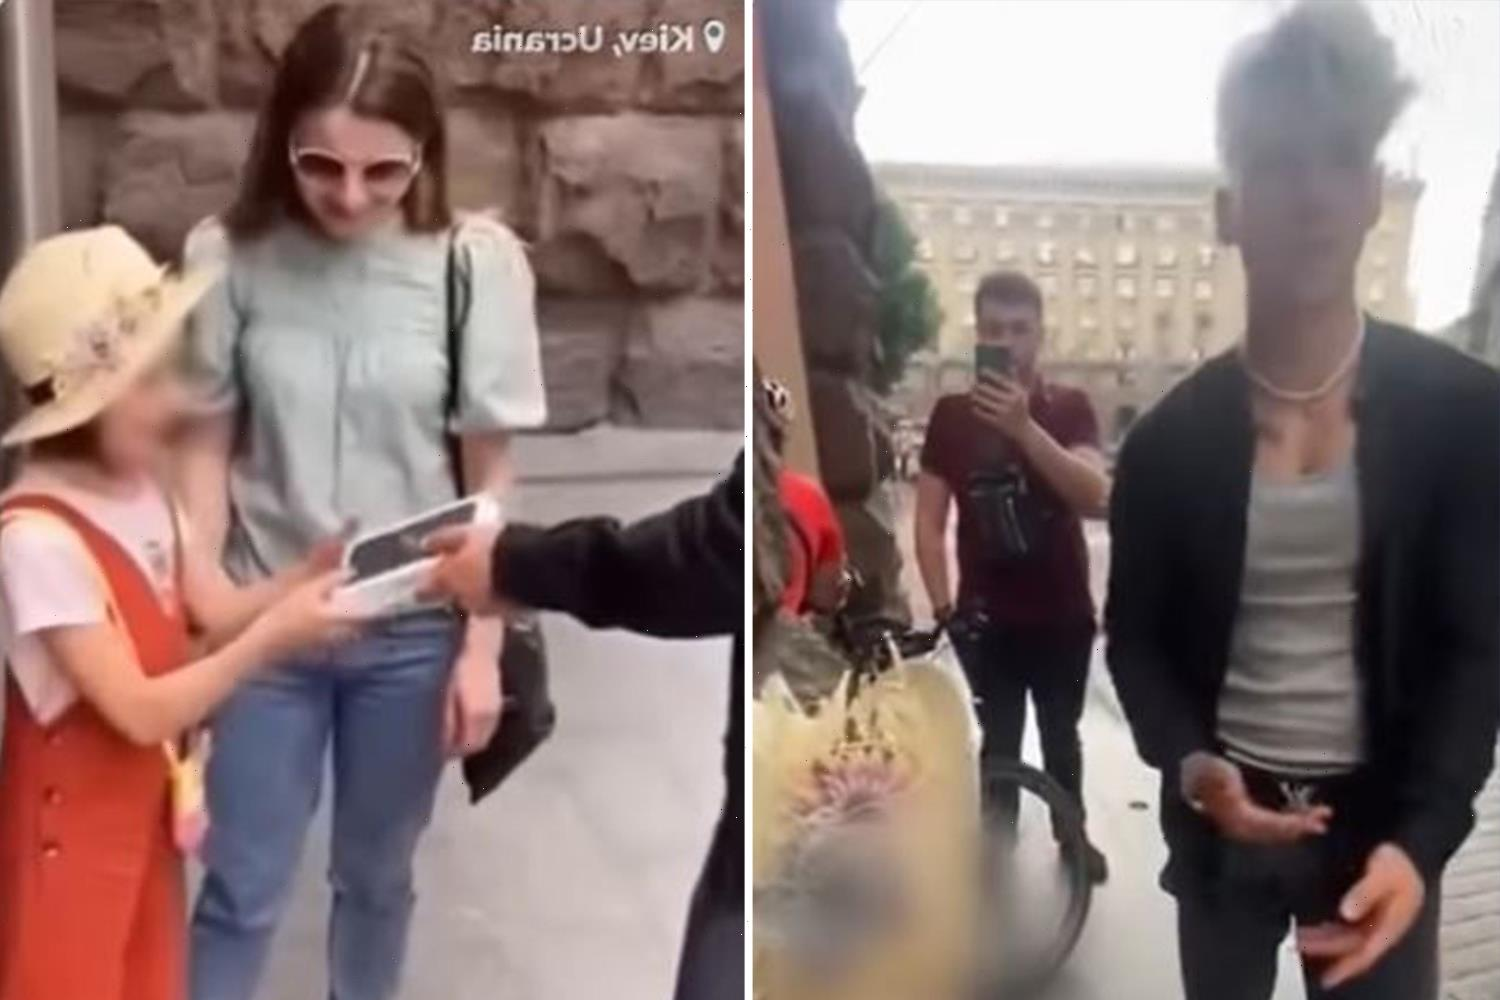 TikToker leaves girl in tears after giving her new phone in 'touching clip' for likes… only to snatch it back later